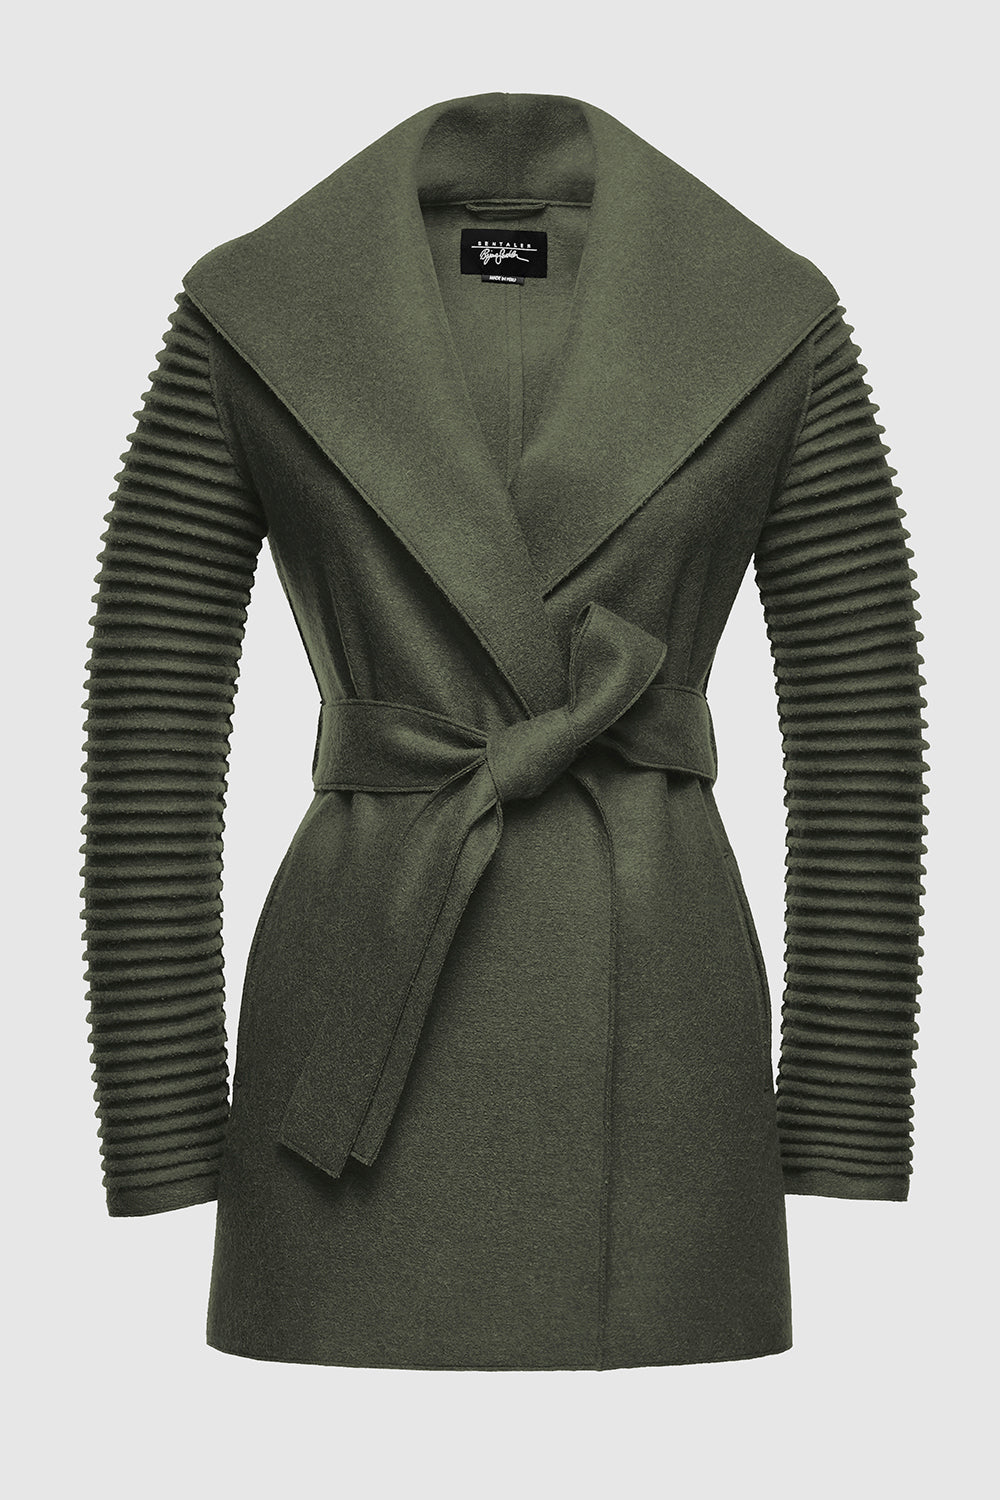 Sentaler Wrap Coat with Ribbed Sleeves featured in Superfine Alpaca and available in Army Green. Seen off model.